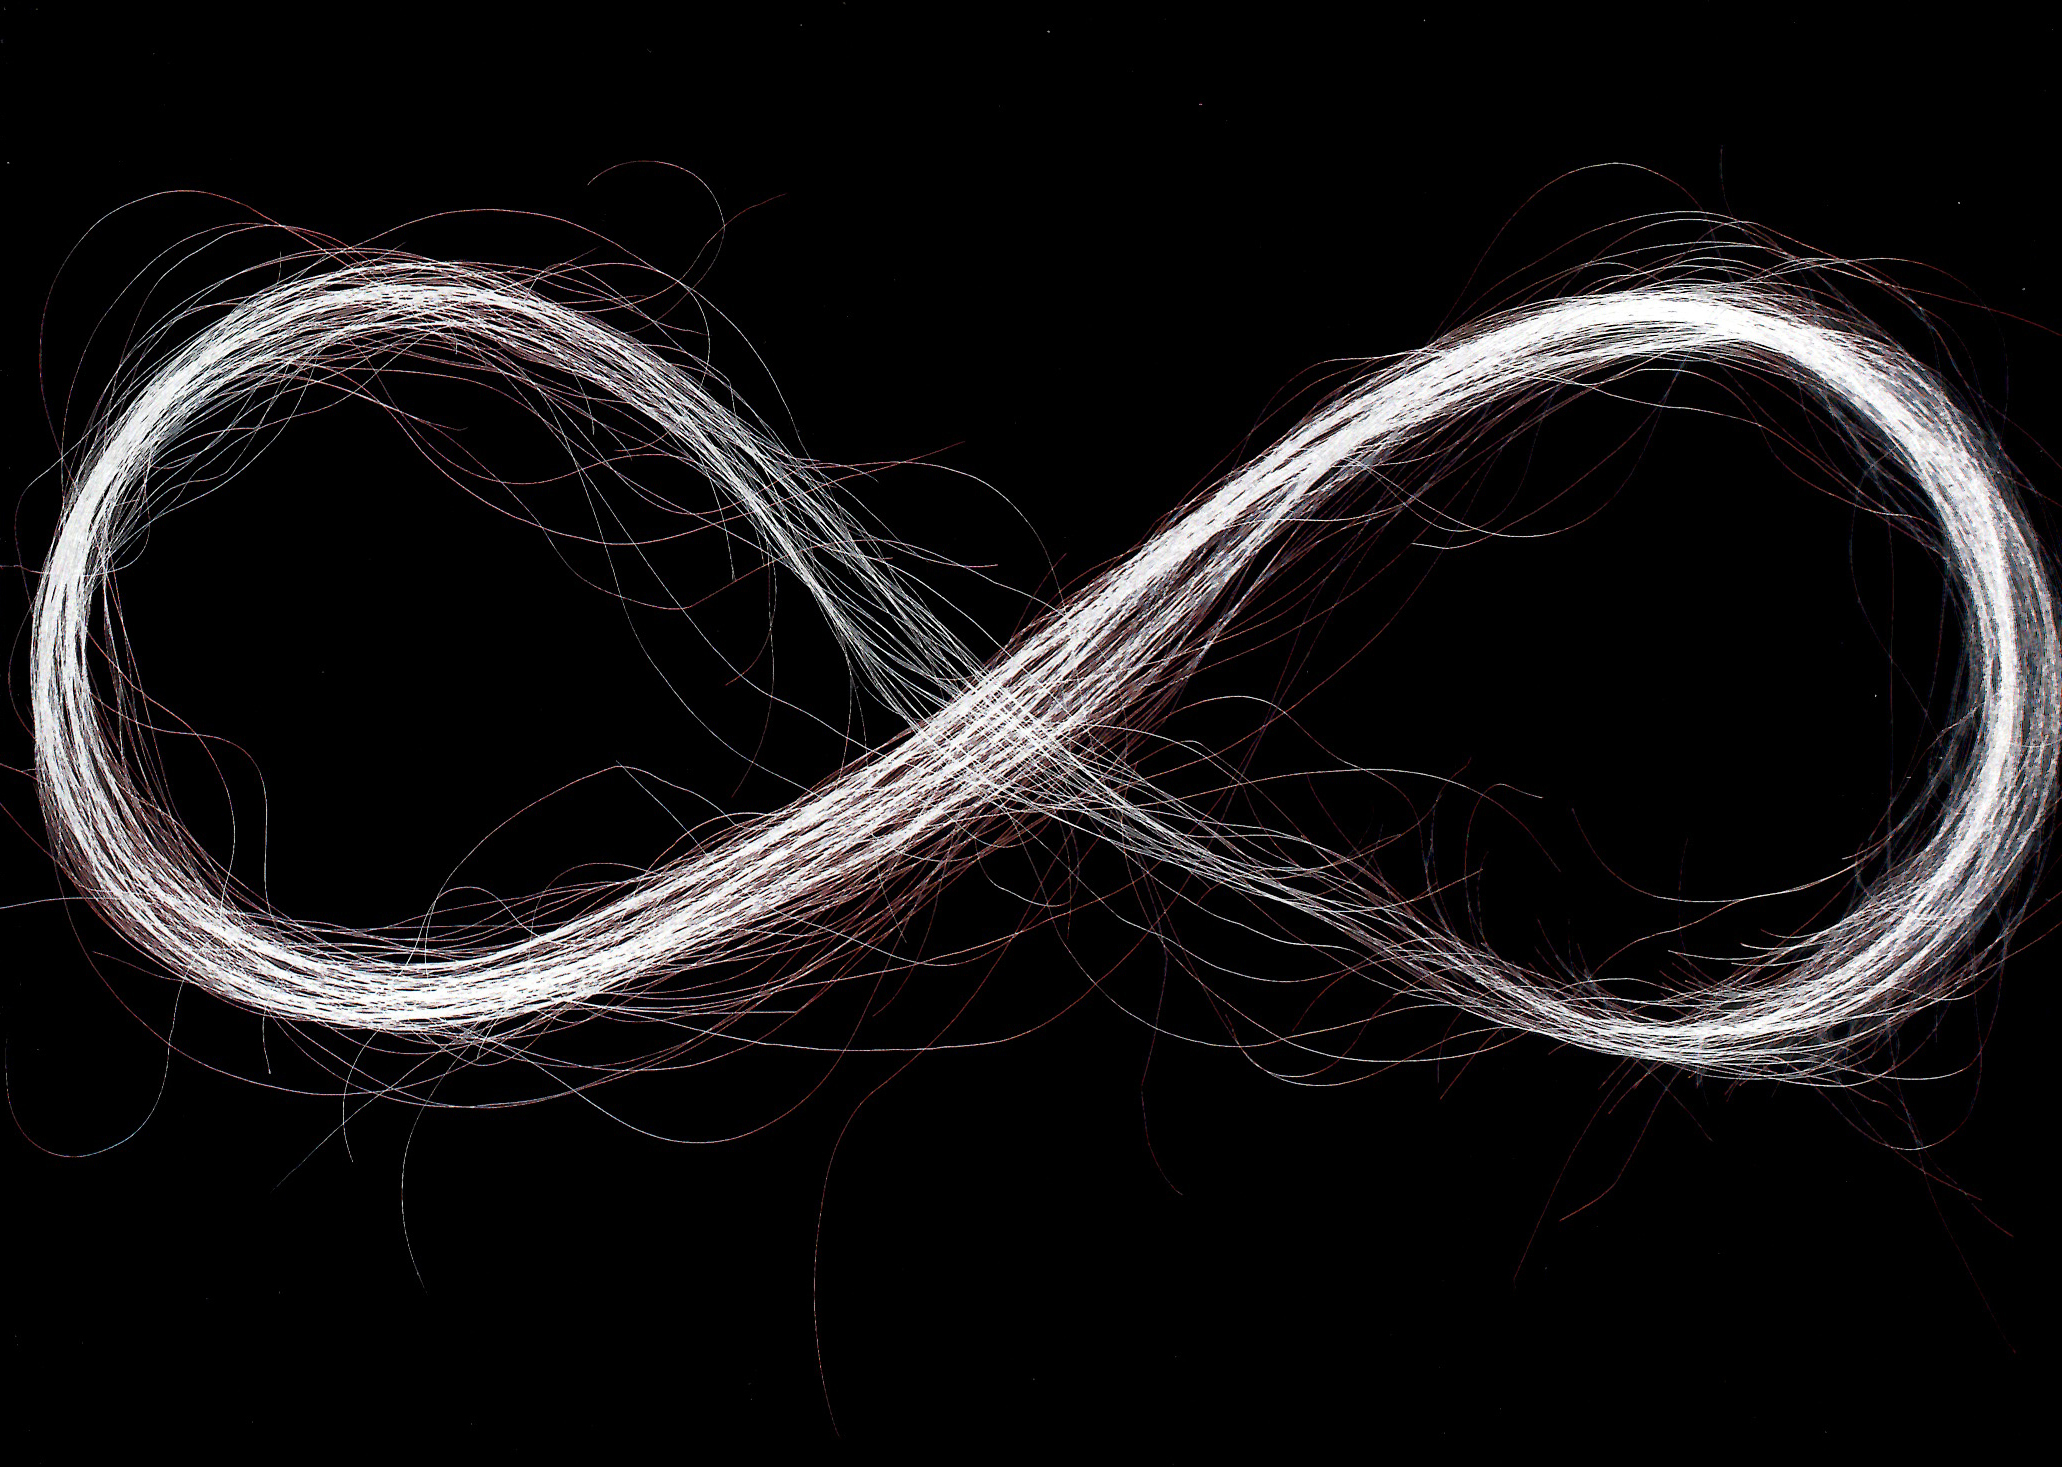 """Infinity Inverted"", 2004, human hair scanned, printed on archival paper, 24 x 30 inches"